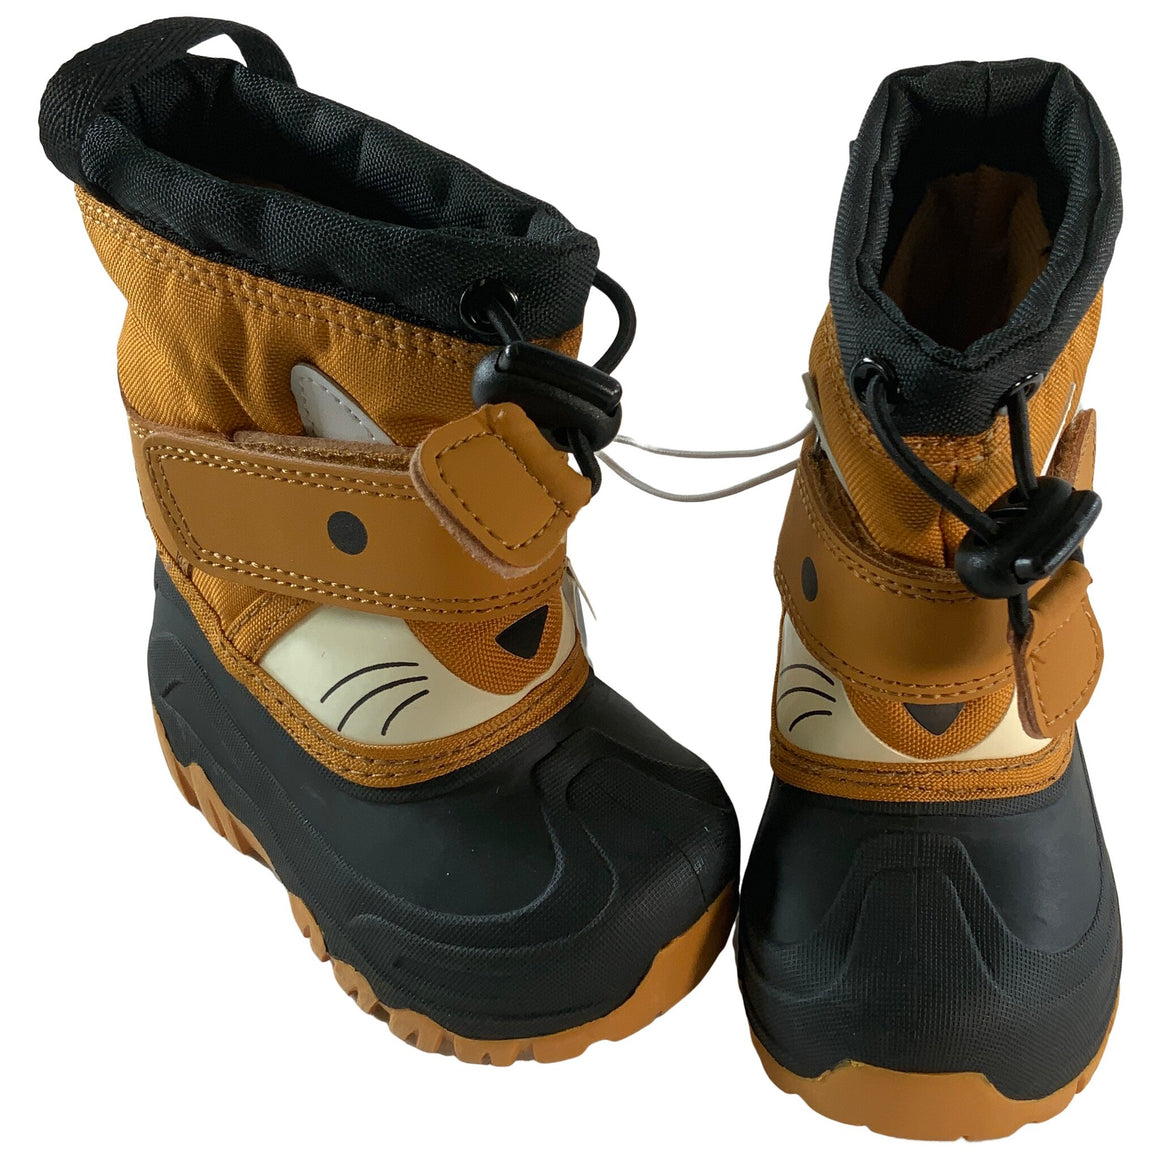 Toddler Boys' Bernardo Fox Winter Boots - Tan 4 - Cat & Jack™